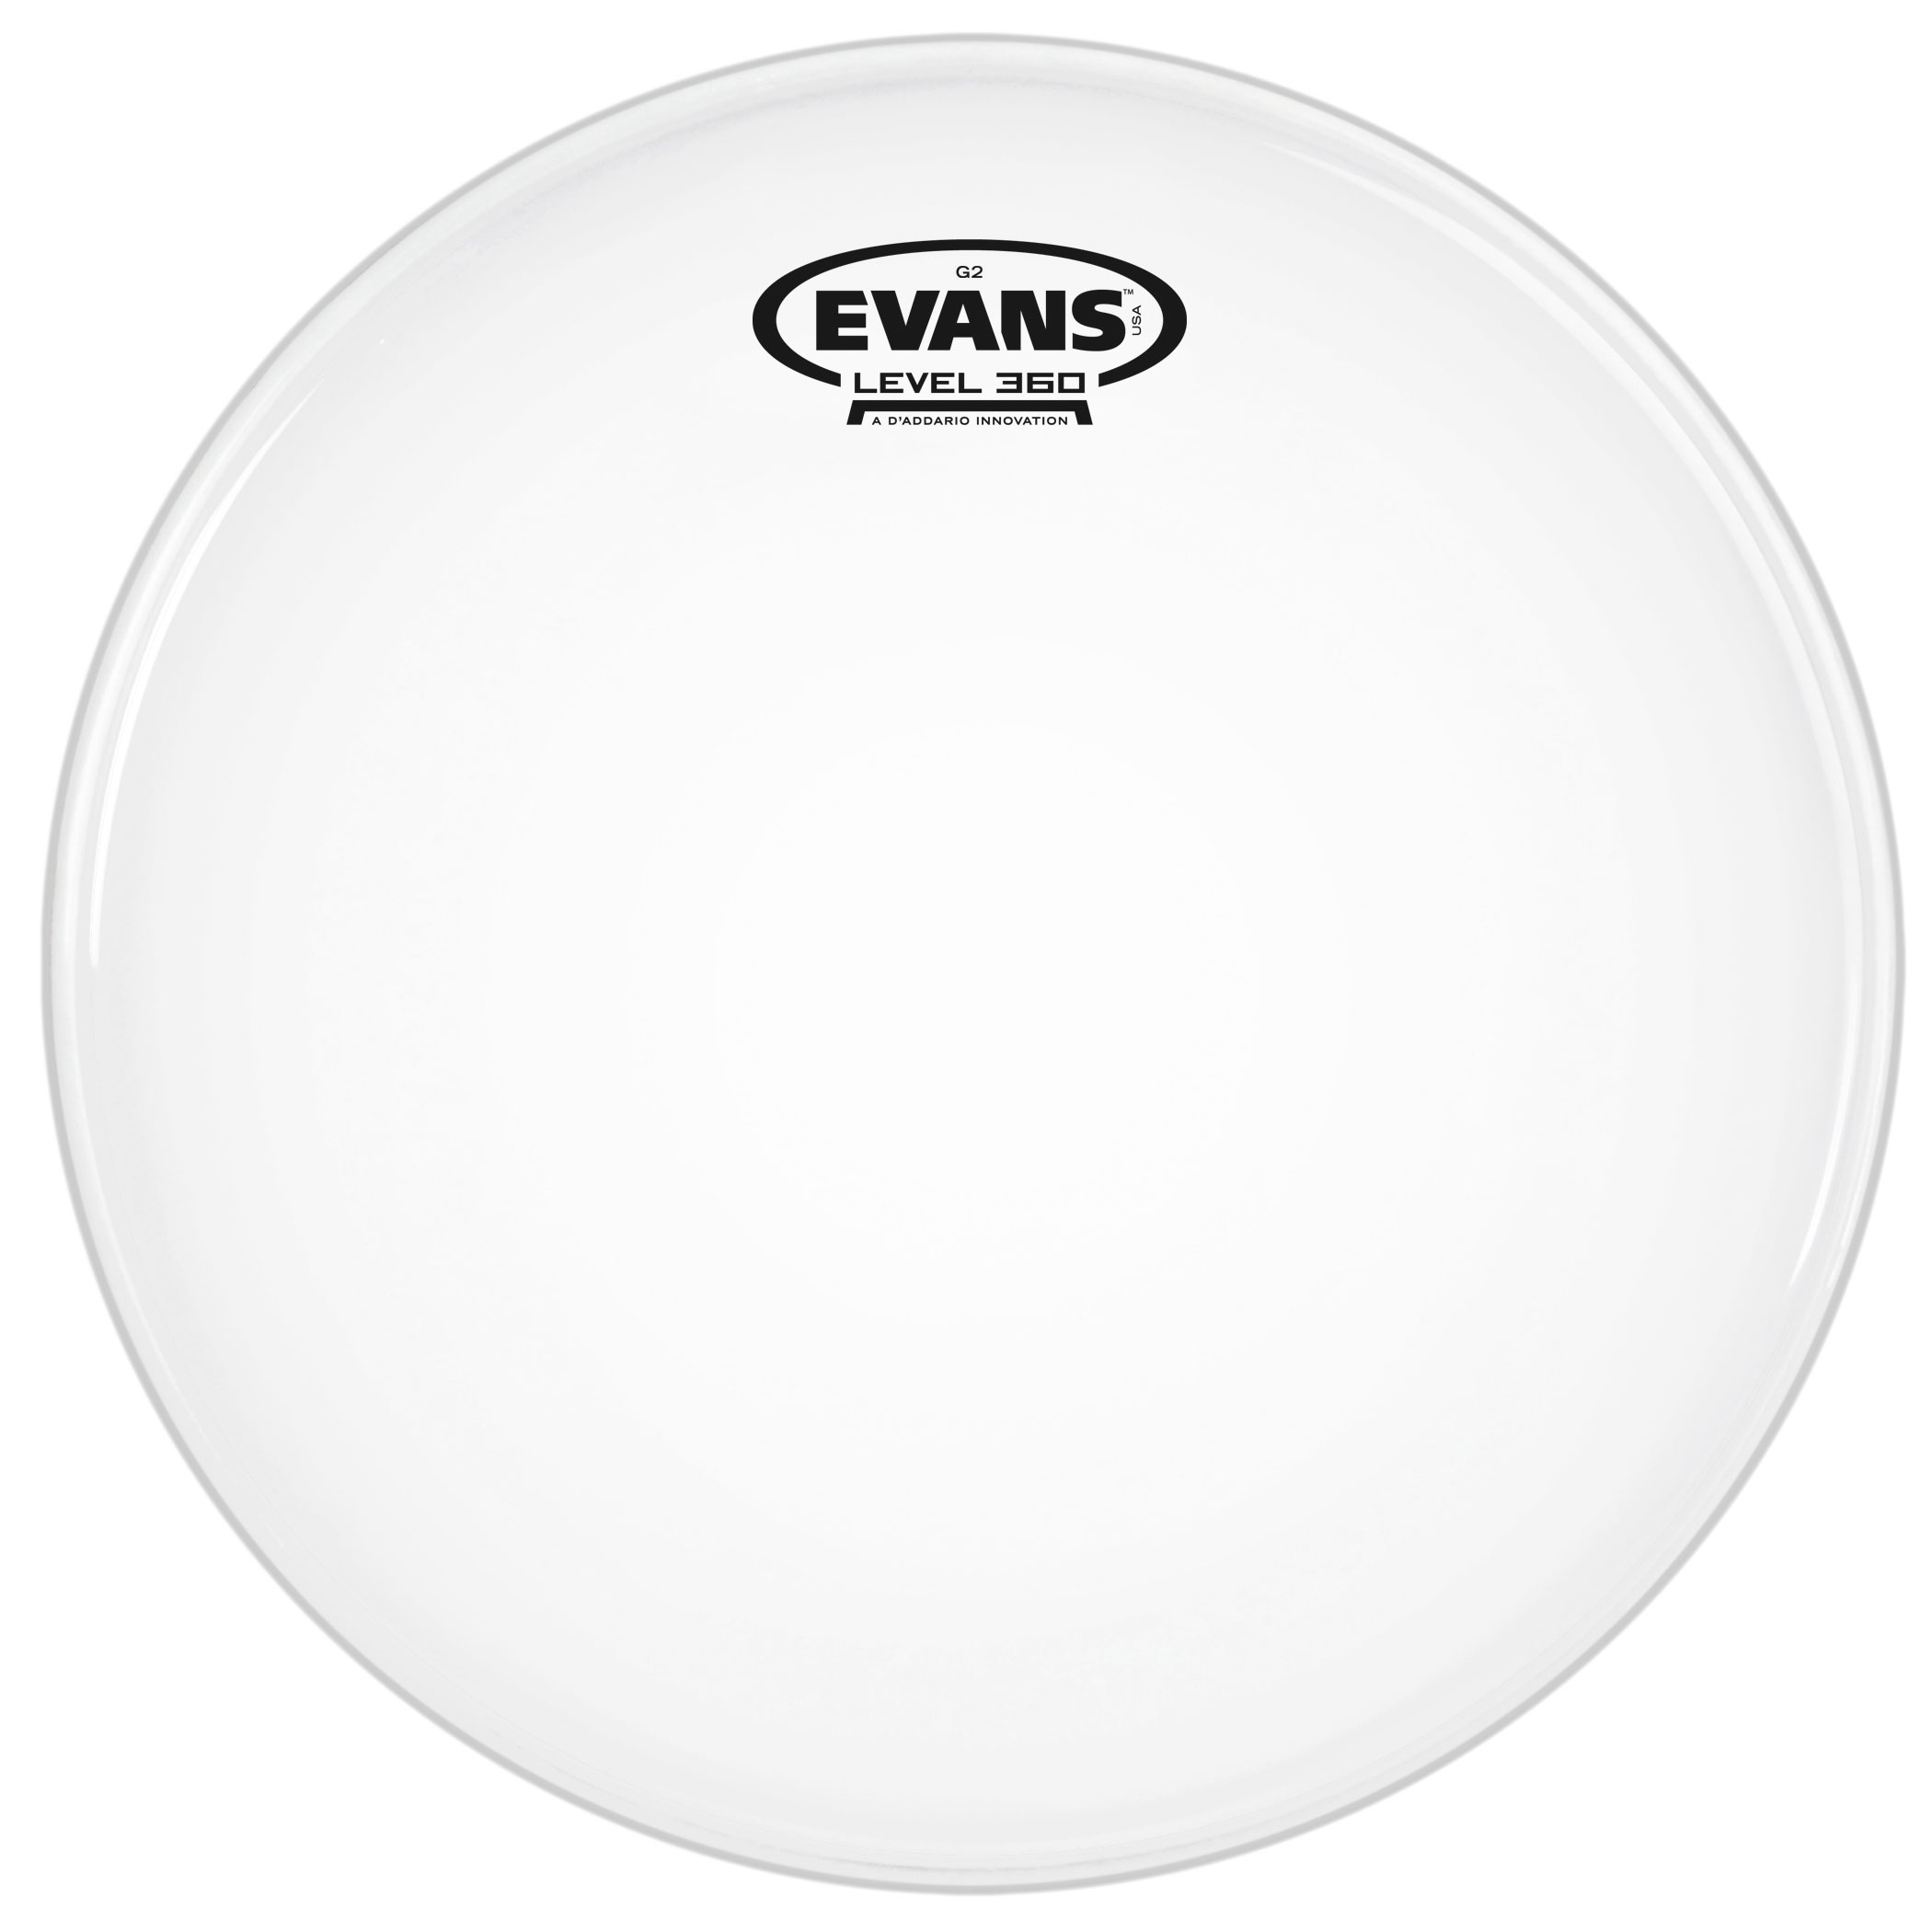 "Evans 8"" G2 Coated Head"